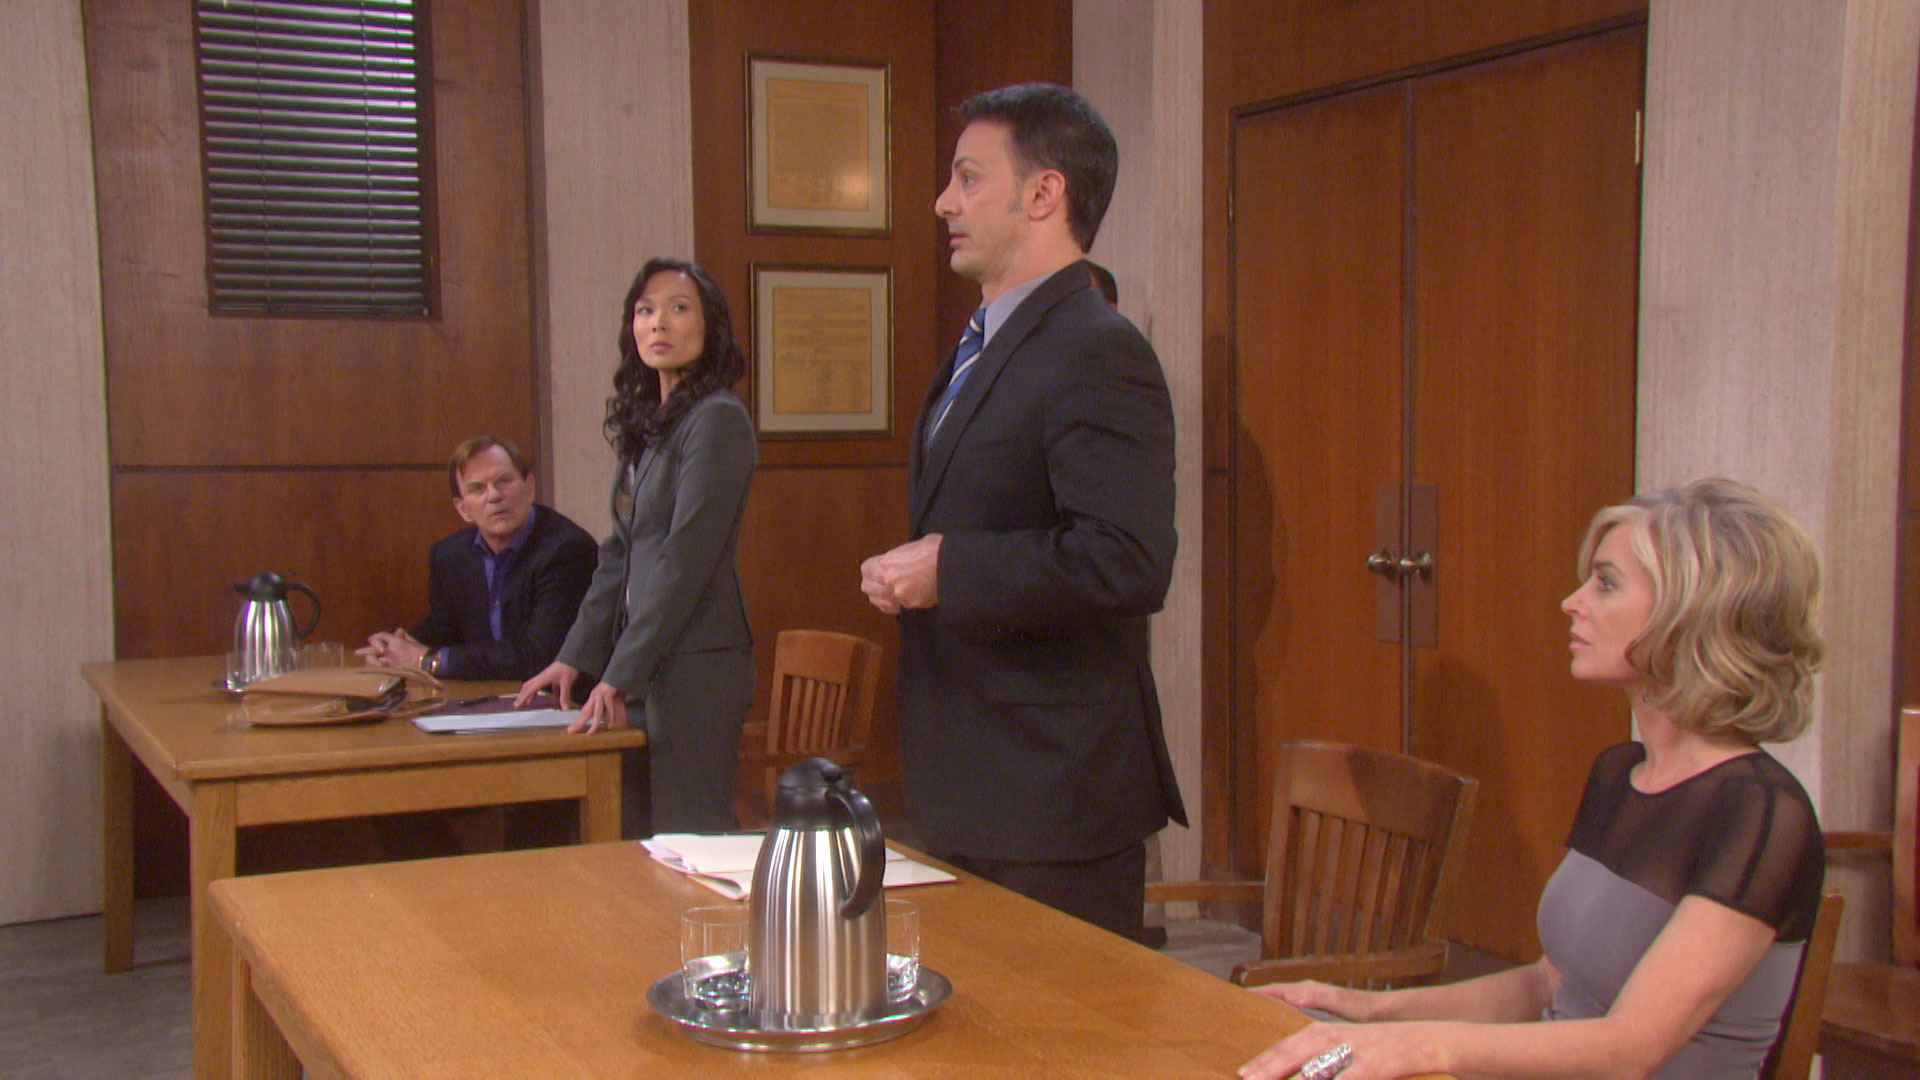 Kristen pulls off a miracle in court.